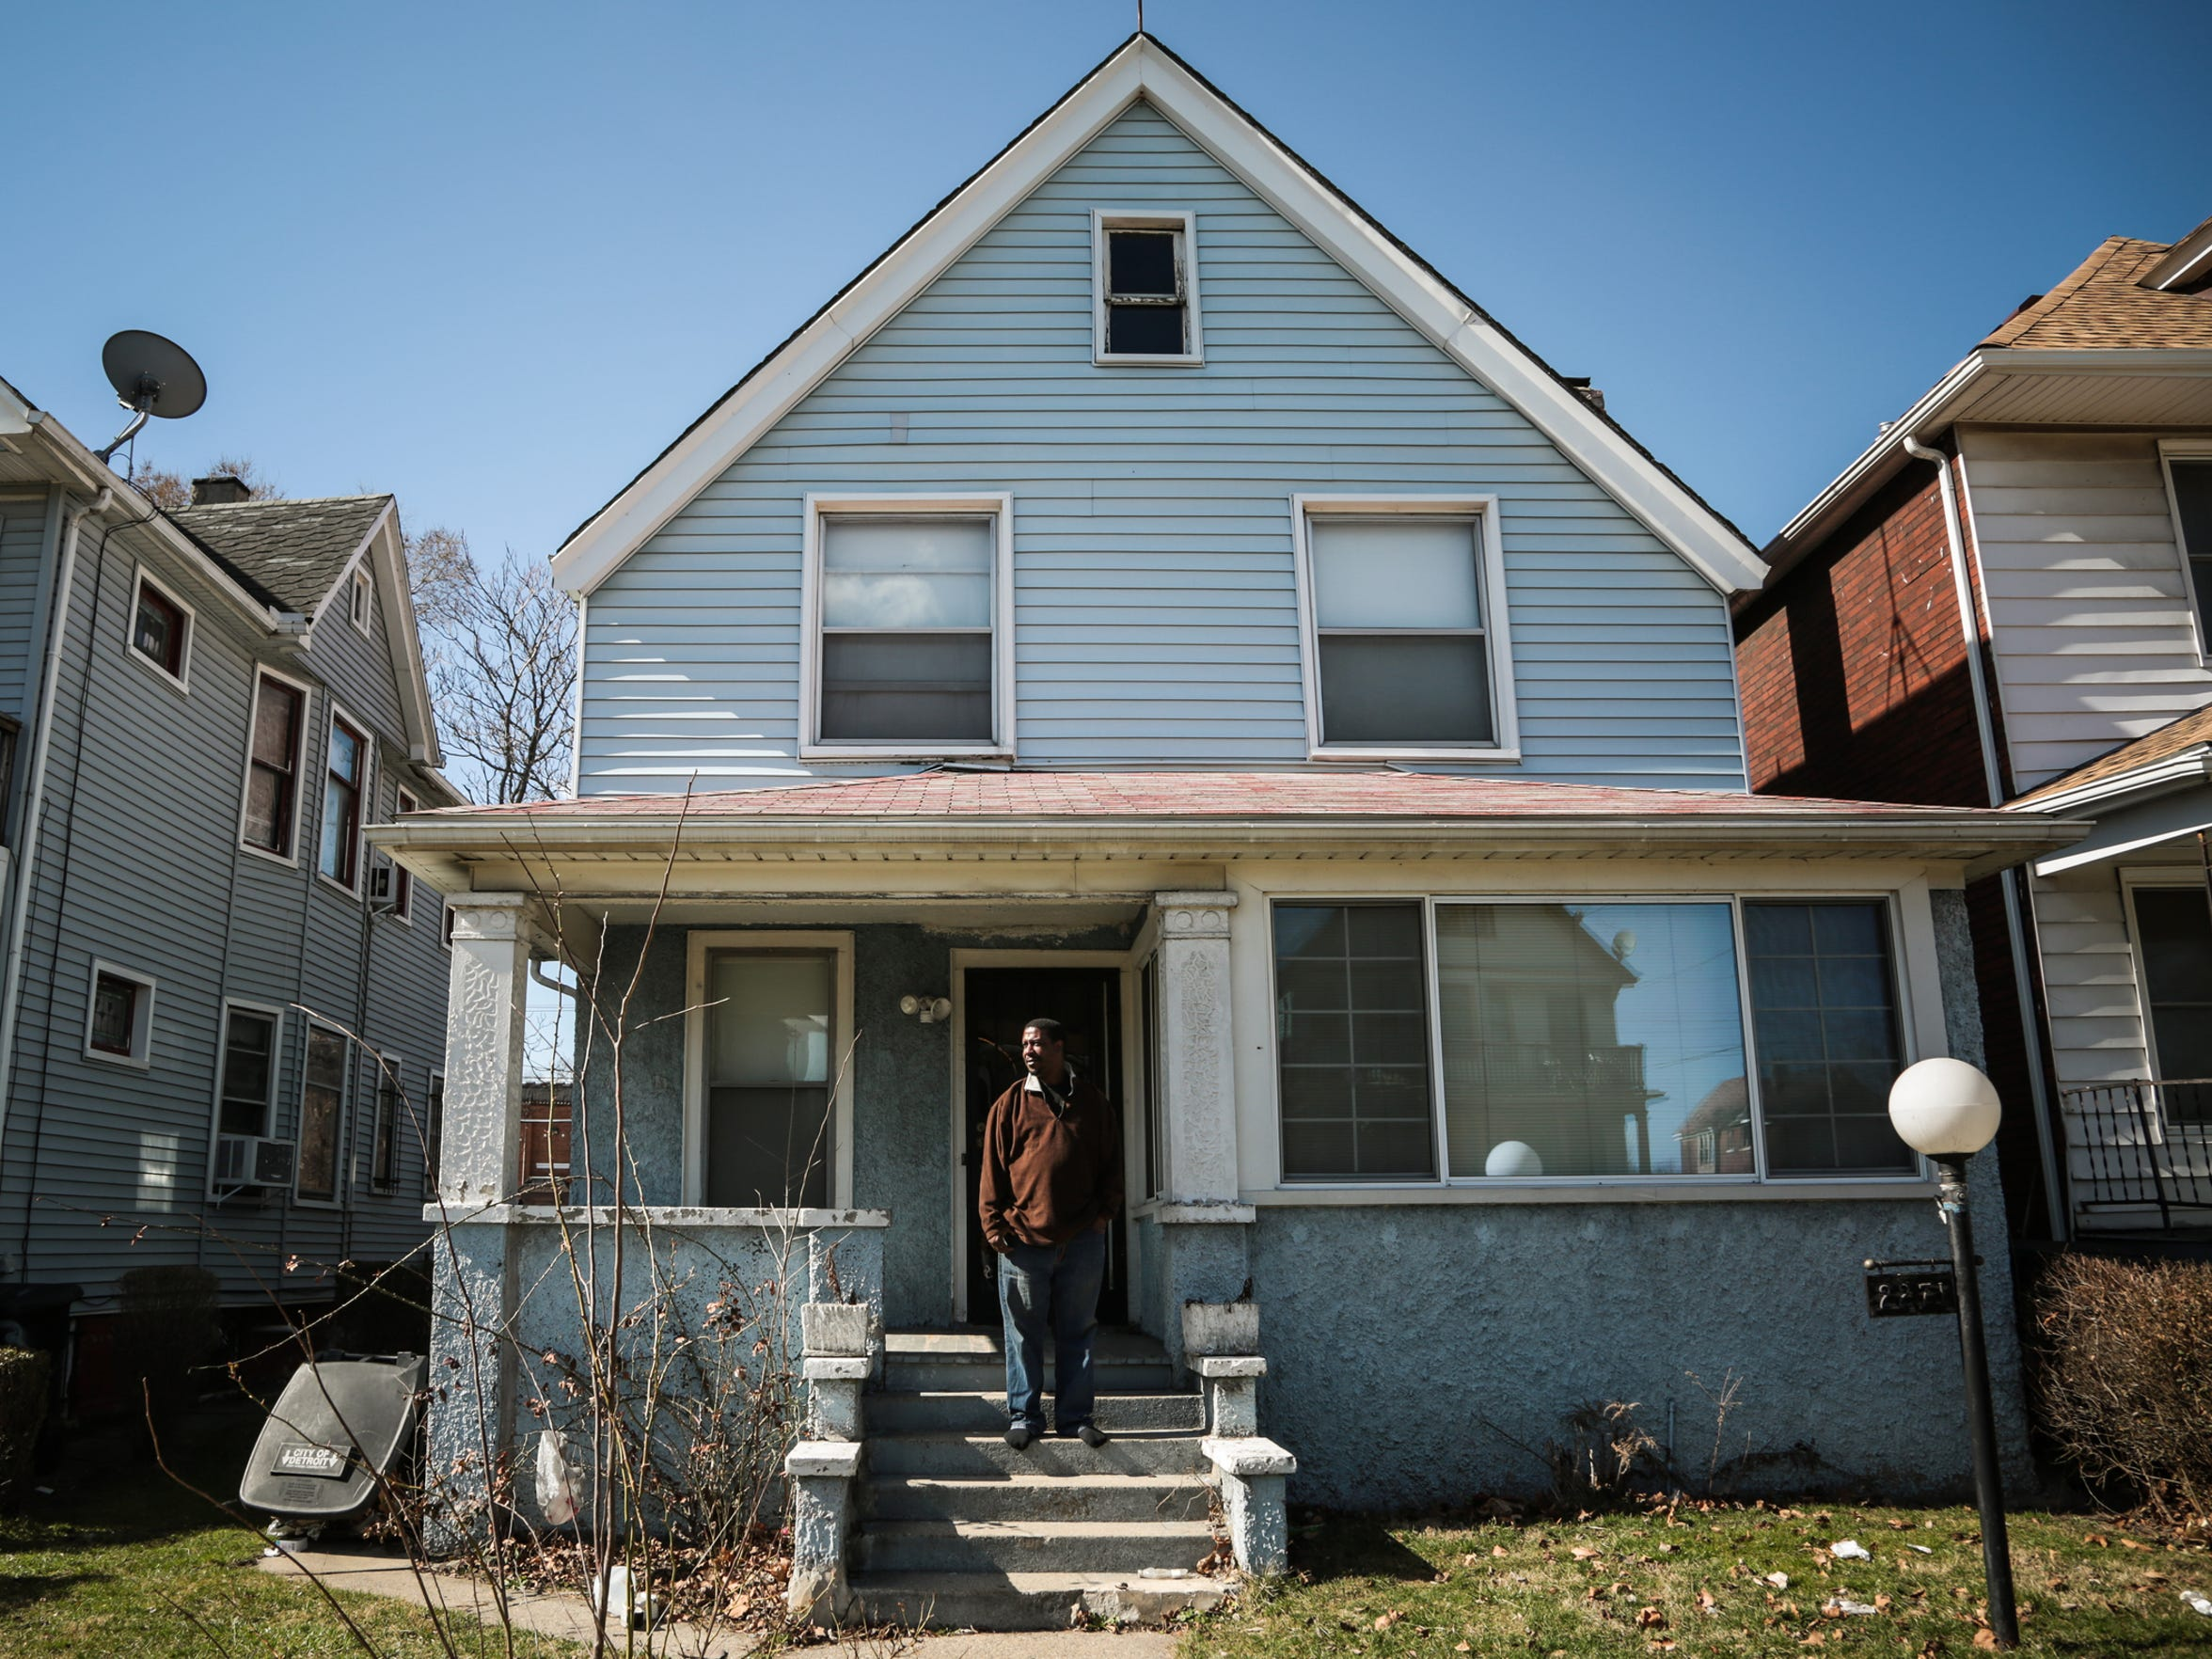 Alonzo Green, 44, of Detroit, stands on the porch of his mother's home on Bewick, on Detroit's east side, on March 8, 2017. Green moved back from North Carolina in January to try to repair his mother's home after she was moved to a nursing home.